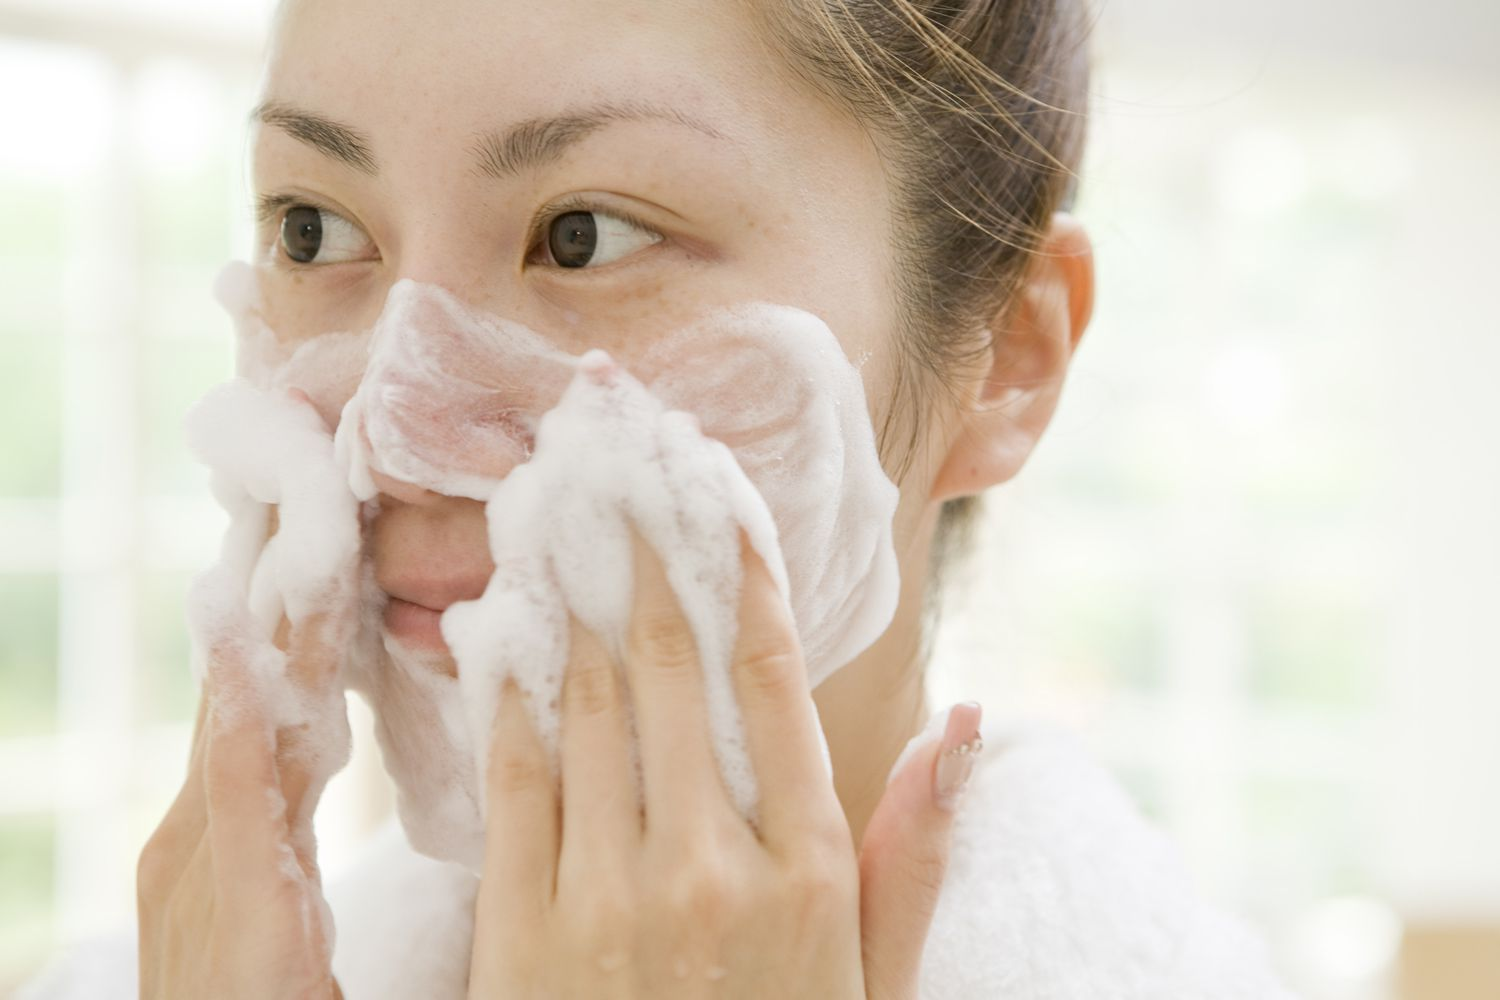 No More Pimples! The 6 Best Soaps & Cleansers for Acne